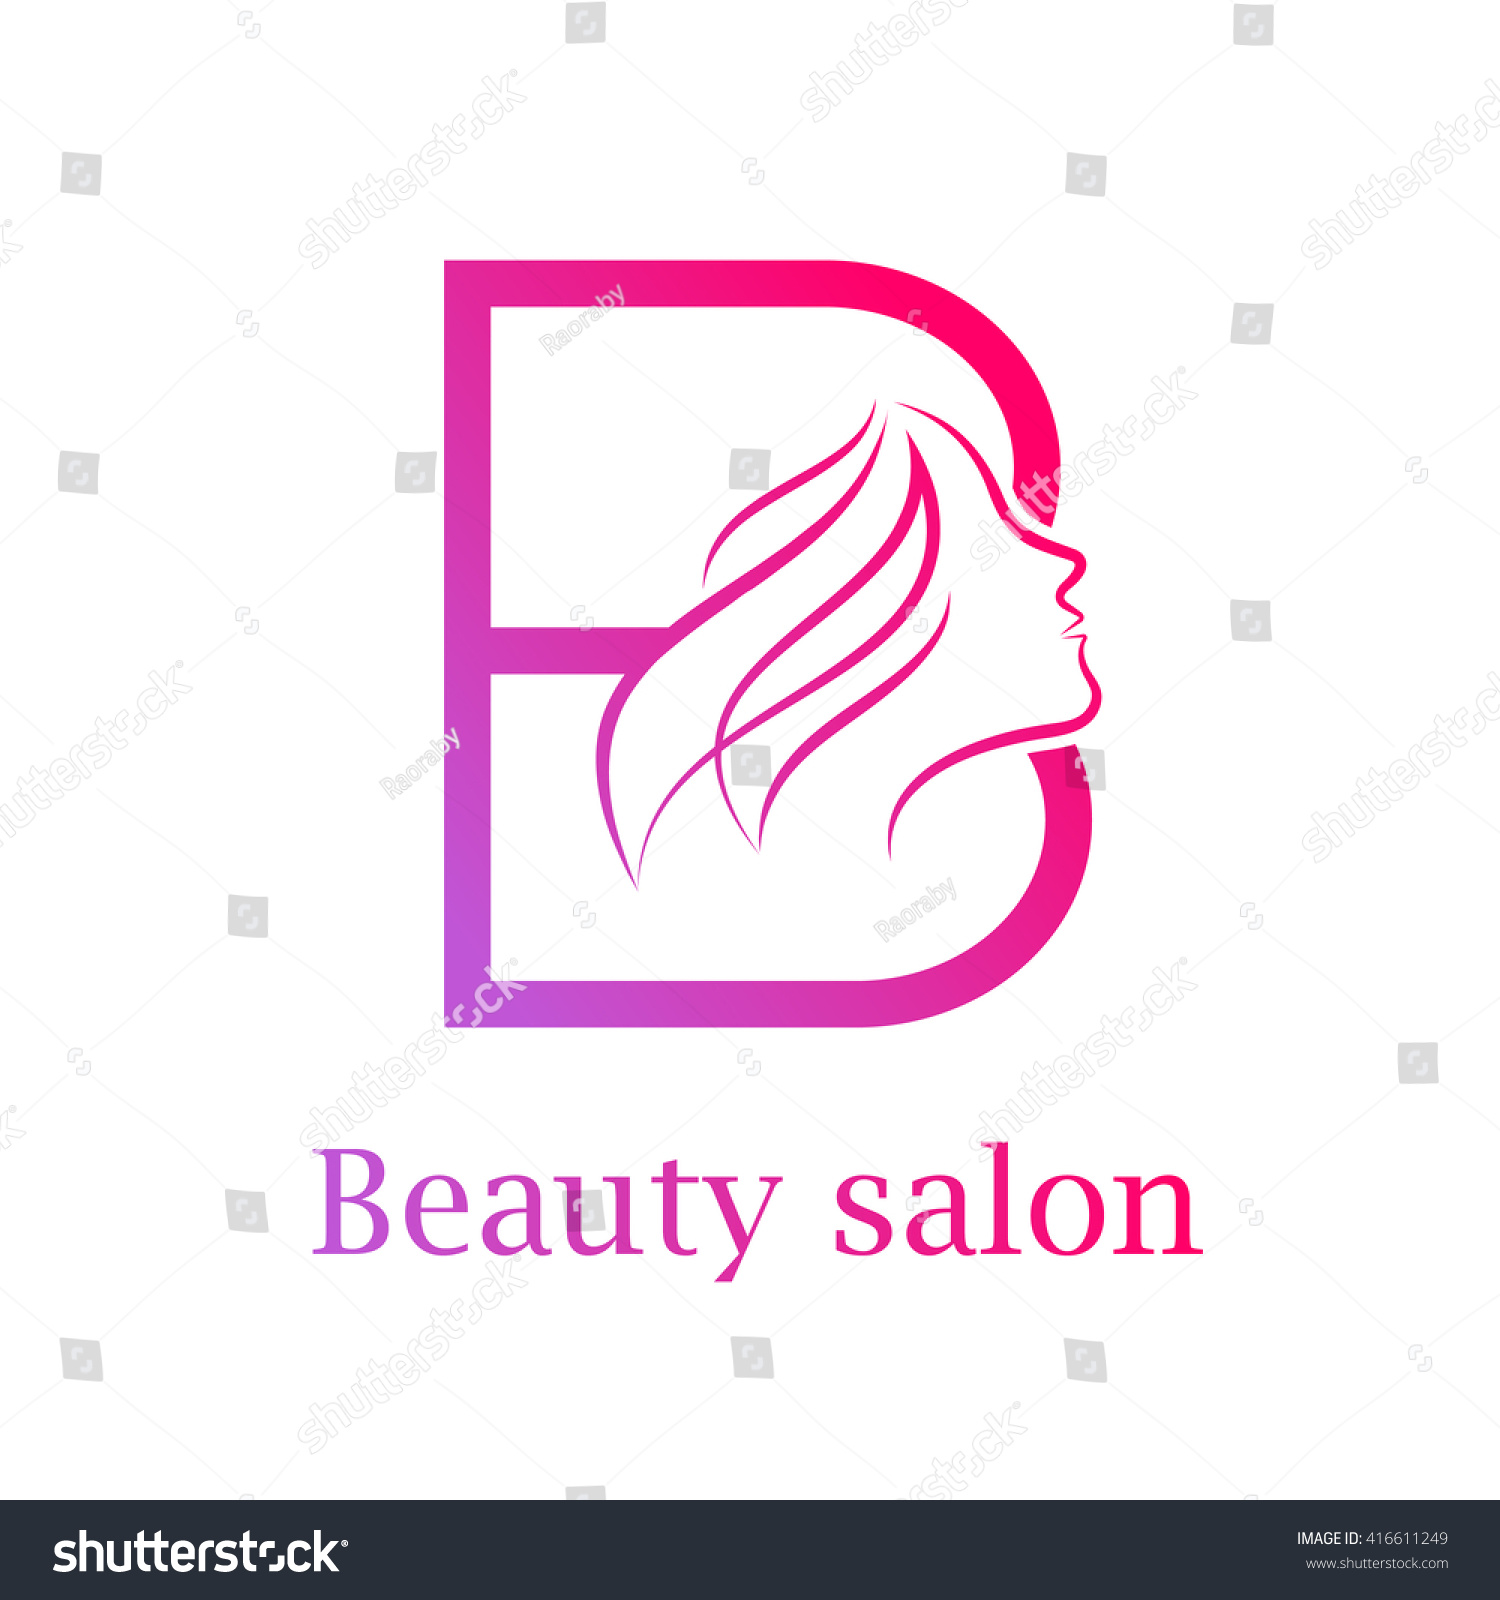 Abstract letter b logobeauty salon logo stock vector for Abstract beauty salon